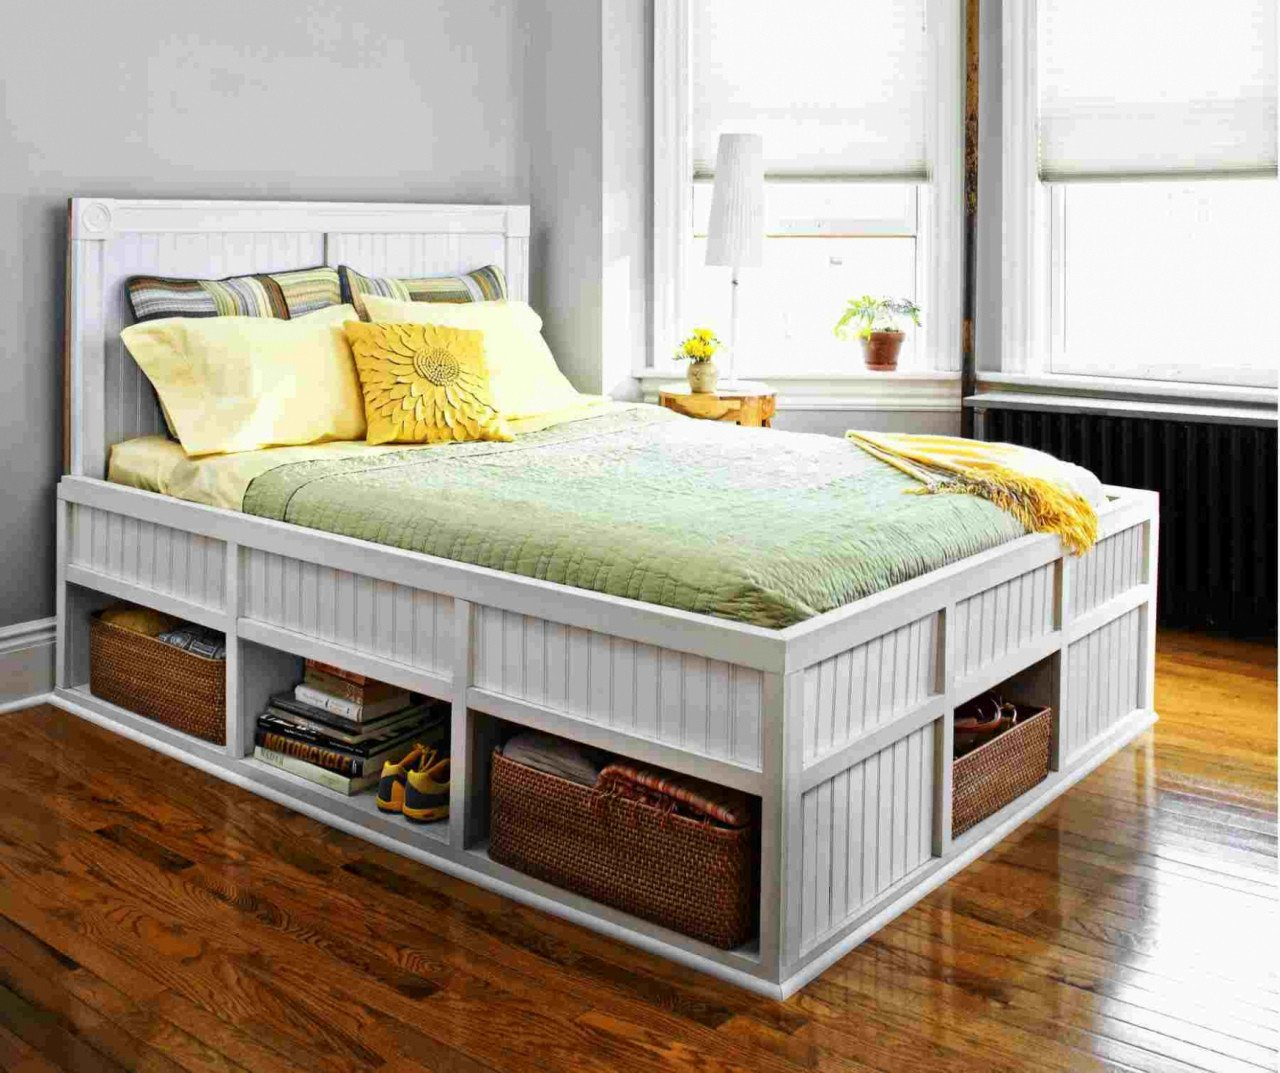 Distressed White Bedroom Furniture Luxury Queen Bed Frame with Drawers — Procura Home Blog